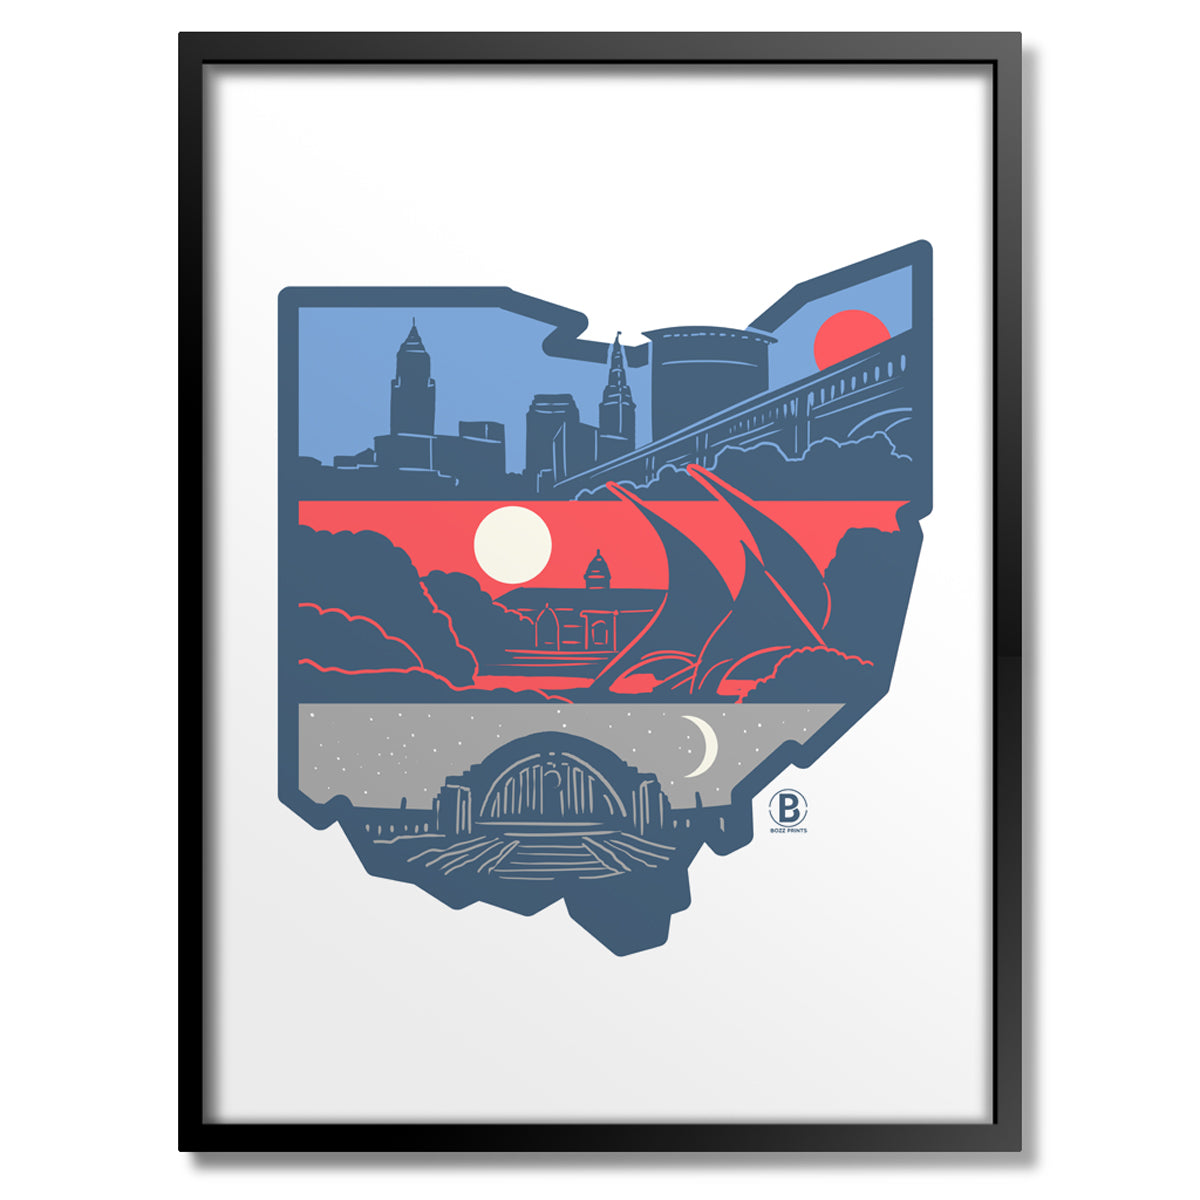 Layers of Ohio Print